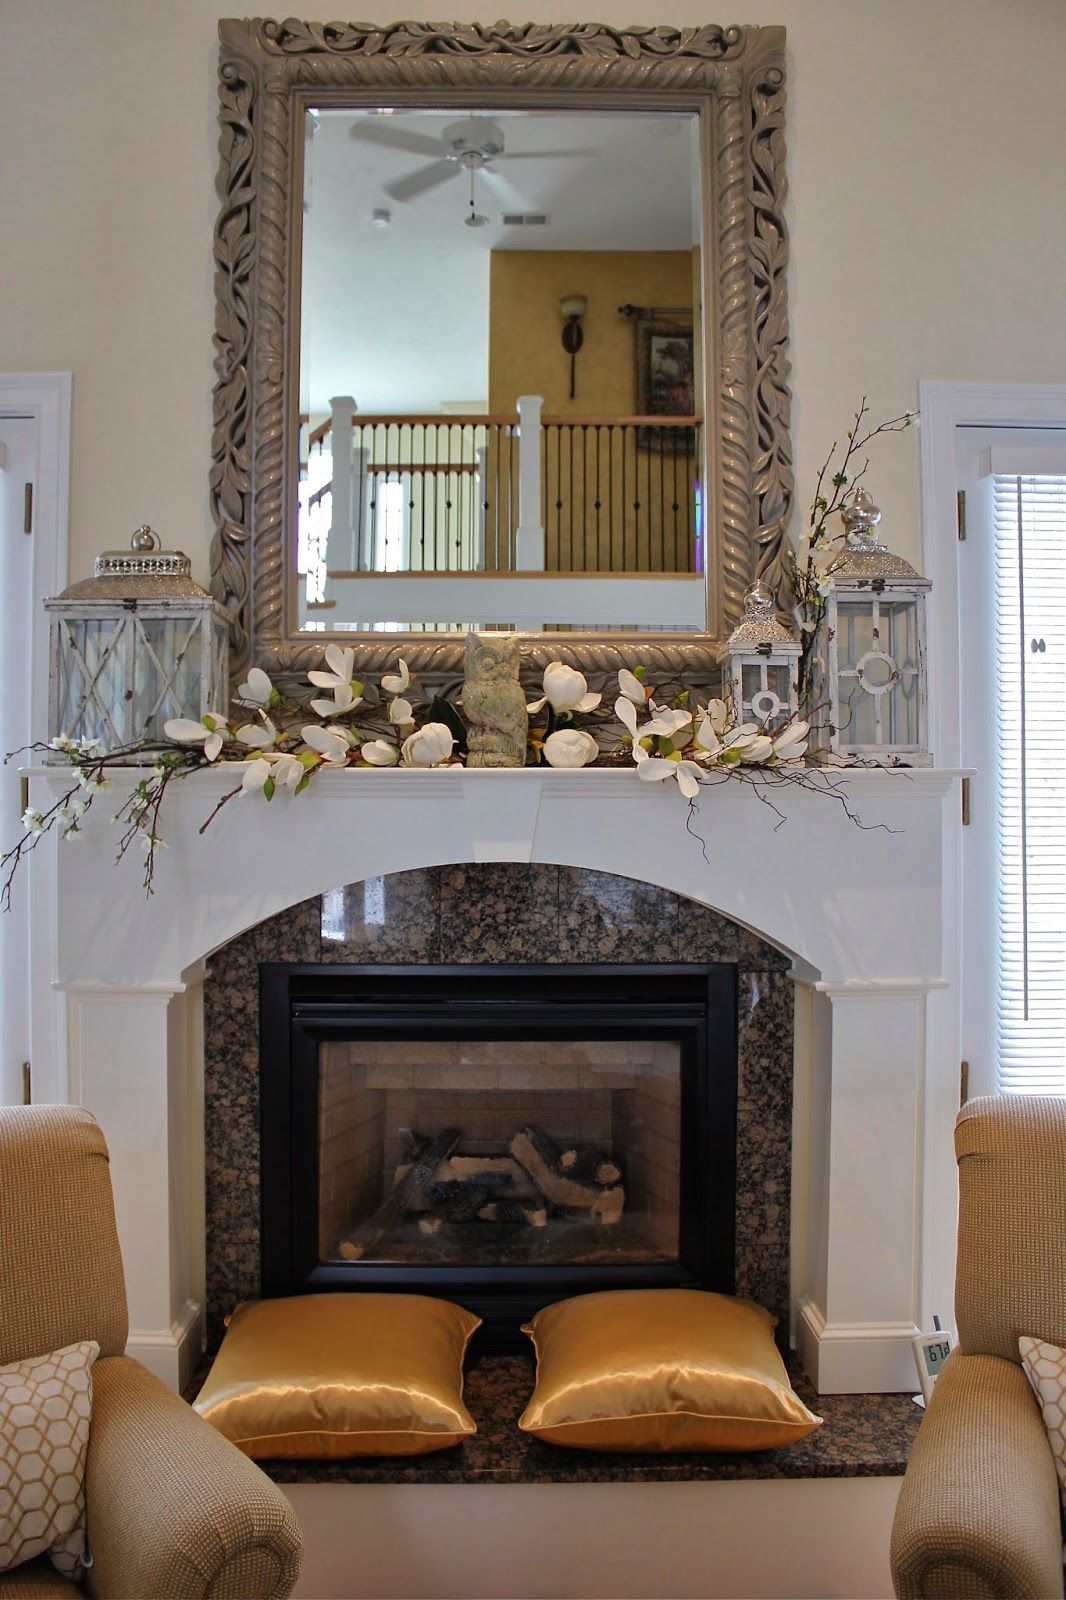 pier one fireplace decor on styling a mantle with lanterns and florals easter fireplace mantel decor fireplace mantel decor fireplace mantle decor fireplace mantel decor